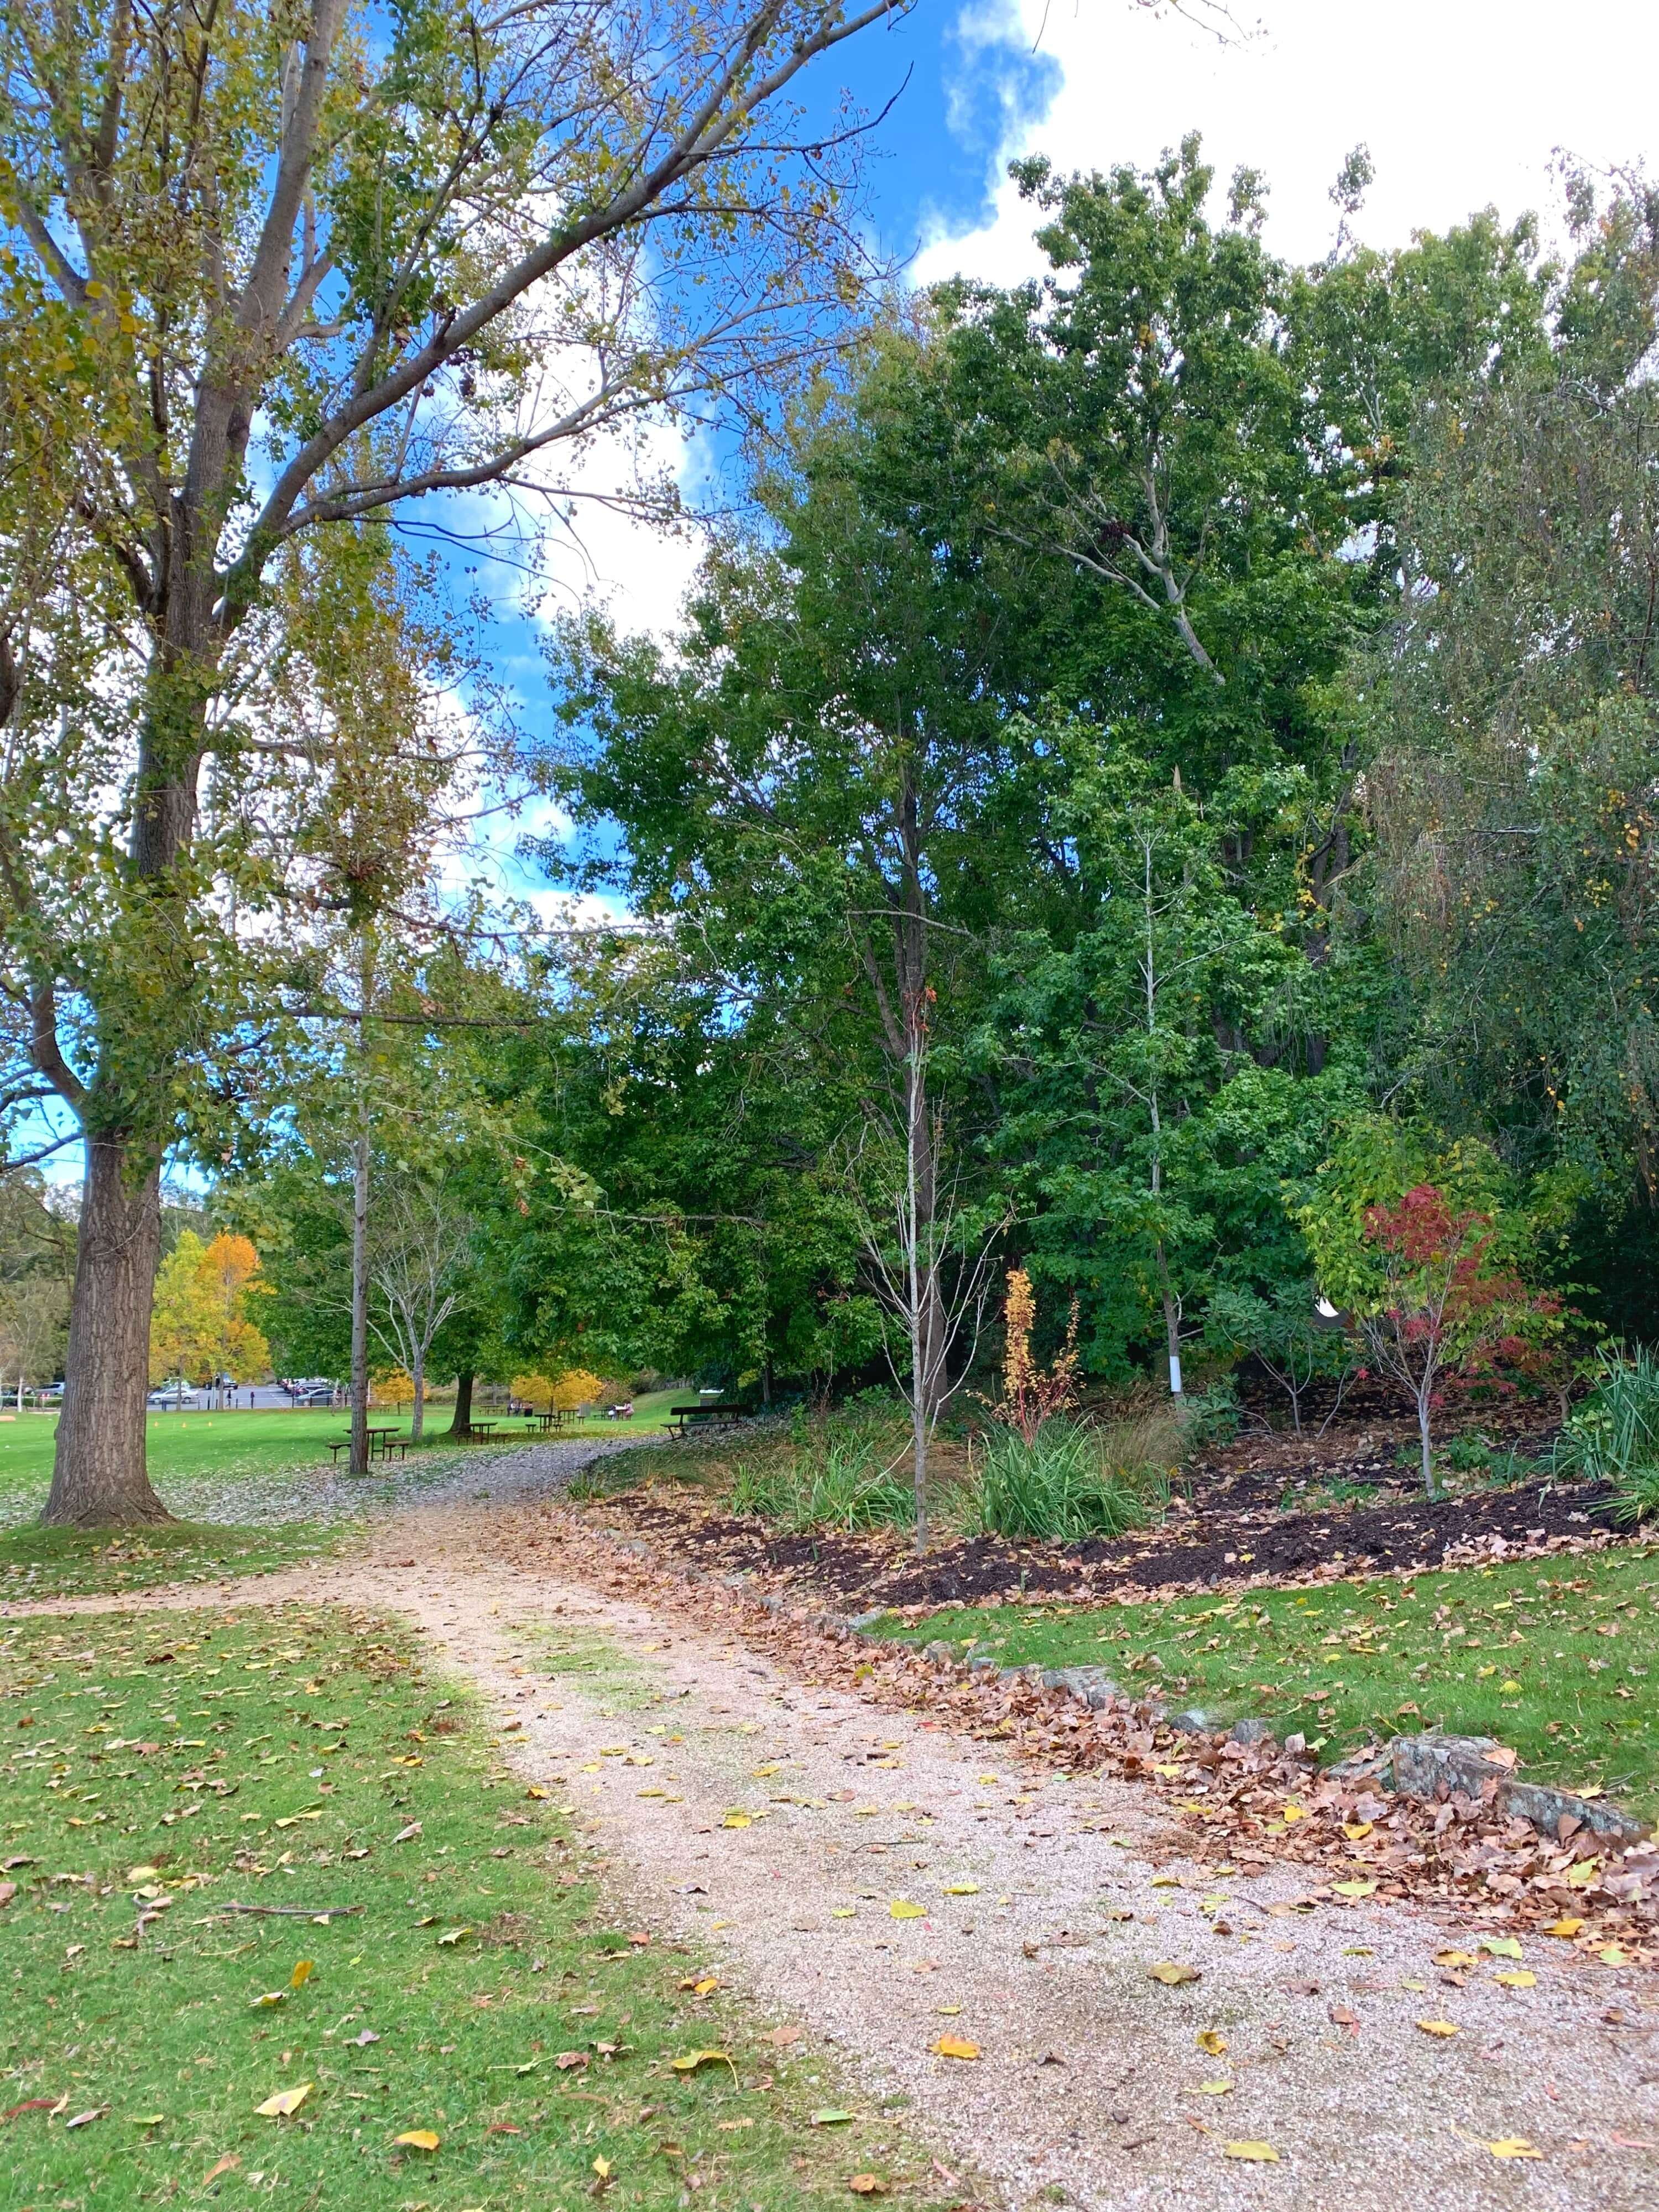 a footpath in a park, surrounded by green and early-autumn trees, Launceston, Tasmania